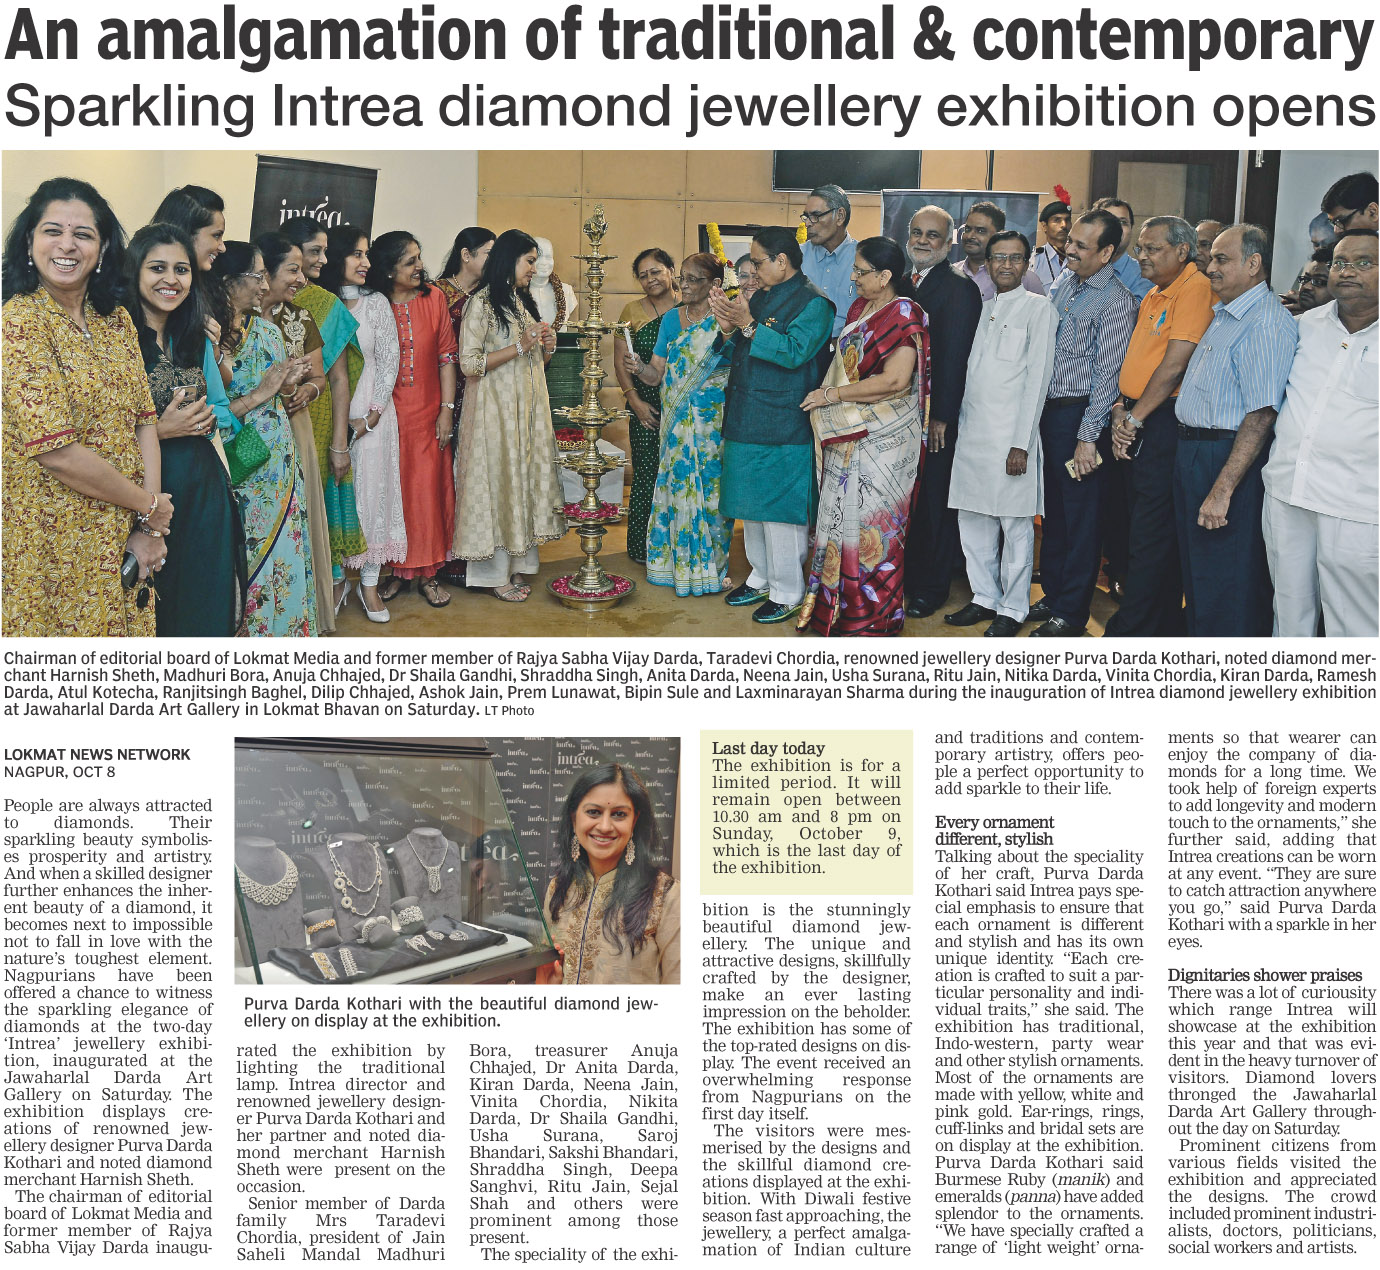 An amalgamation of traditional & contemporary